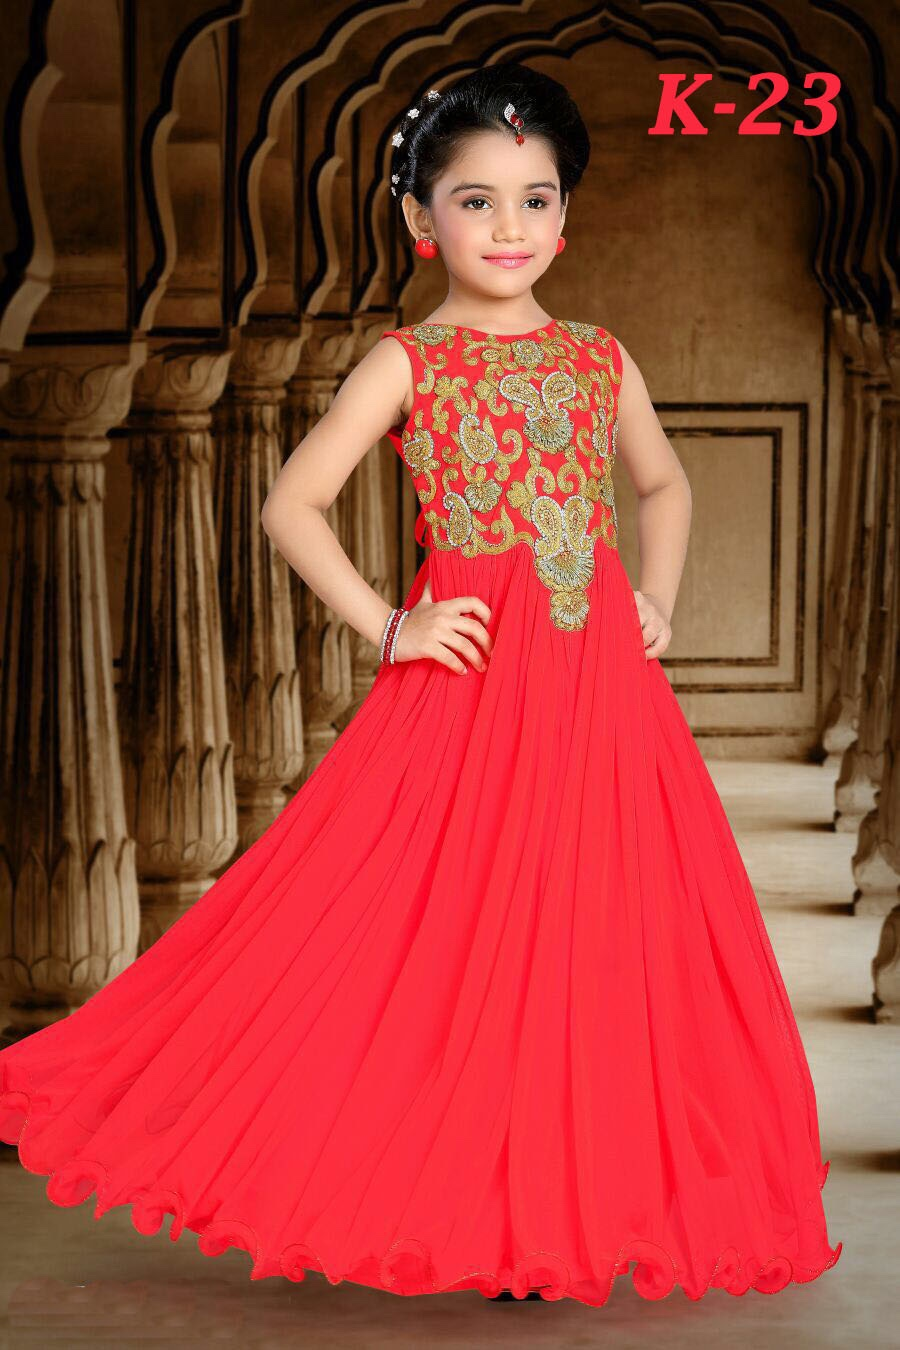 Pictures of gowns for kids